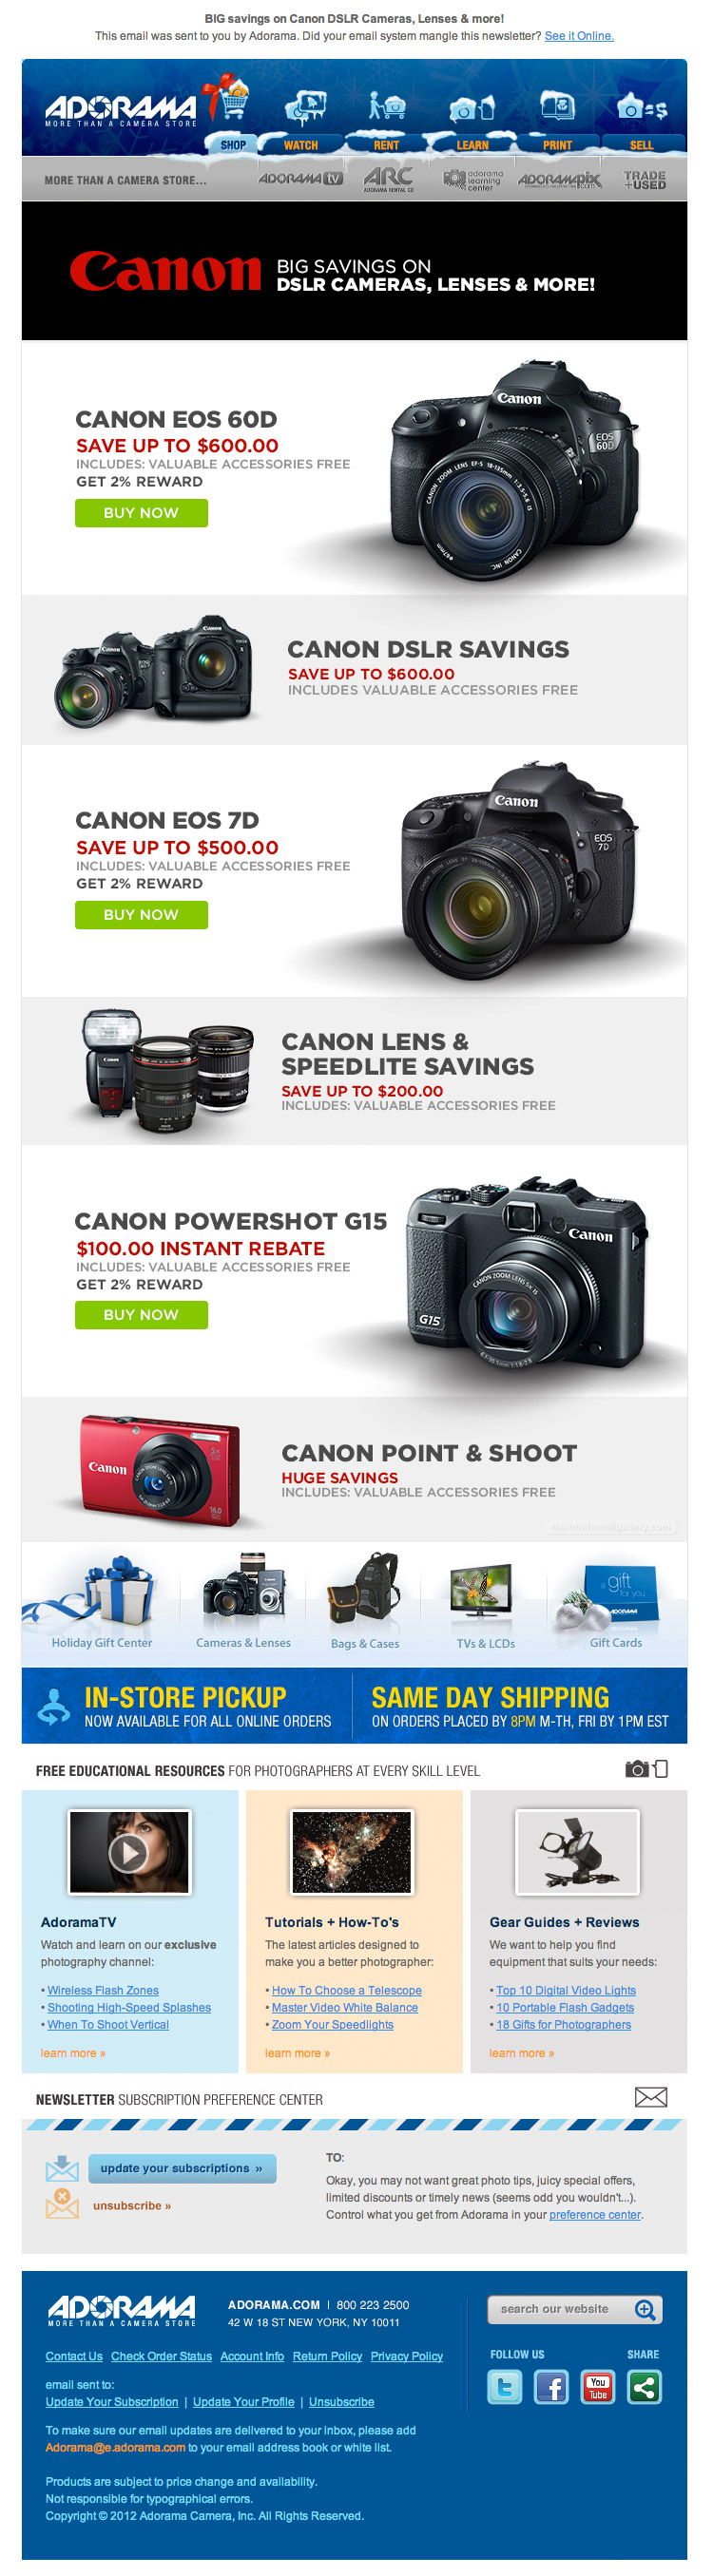 Adorama Latest Deals email